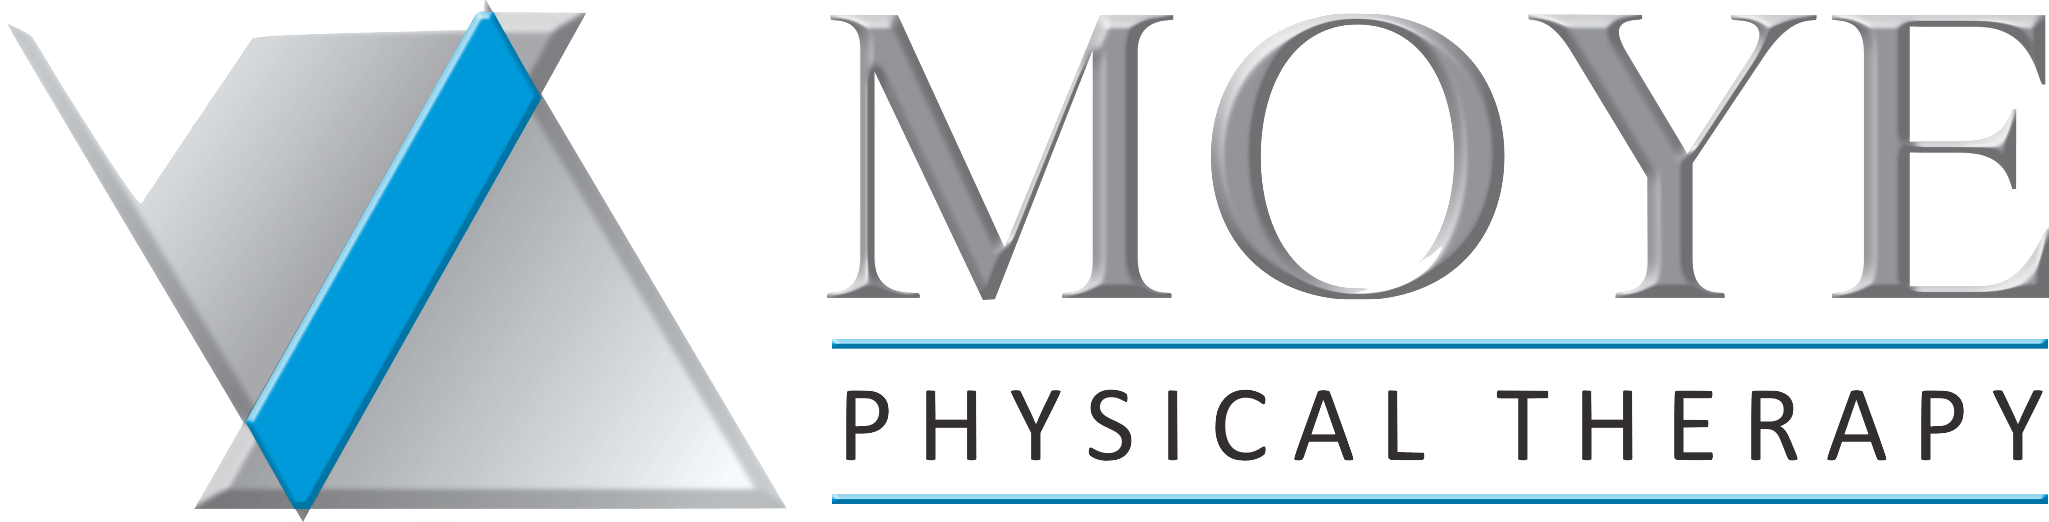 physical therapy southaven ms